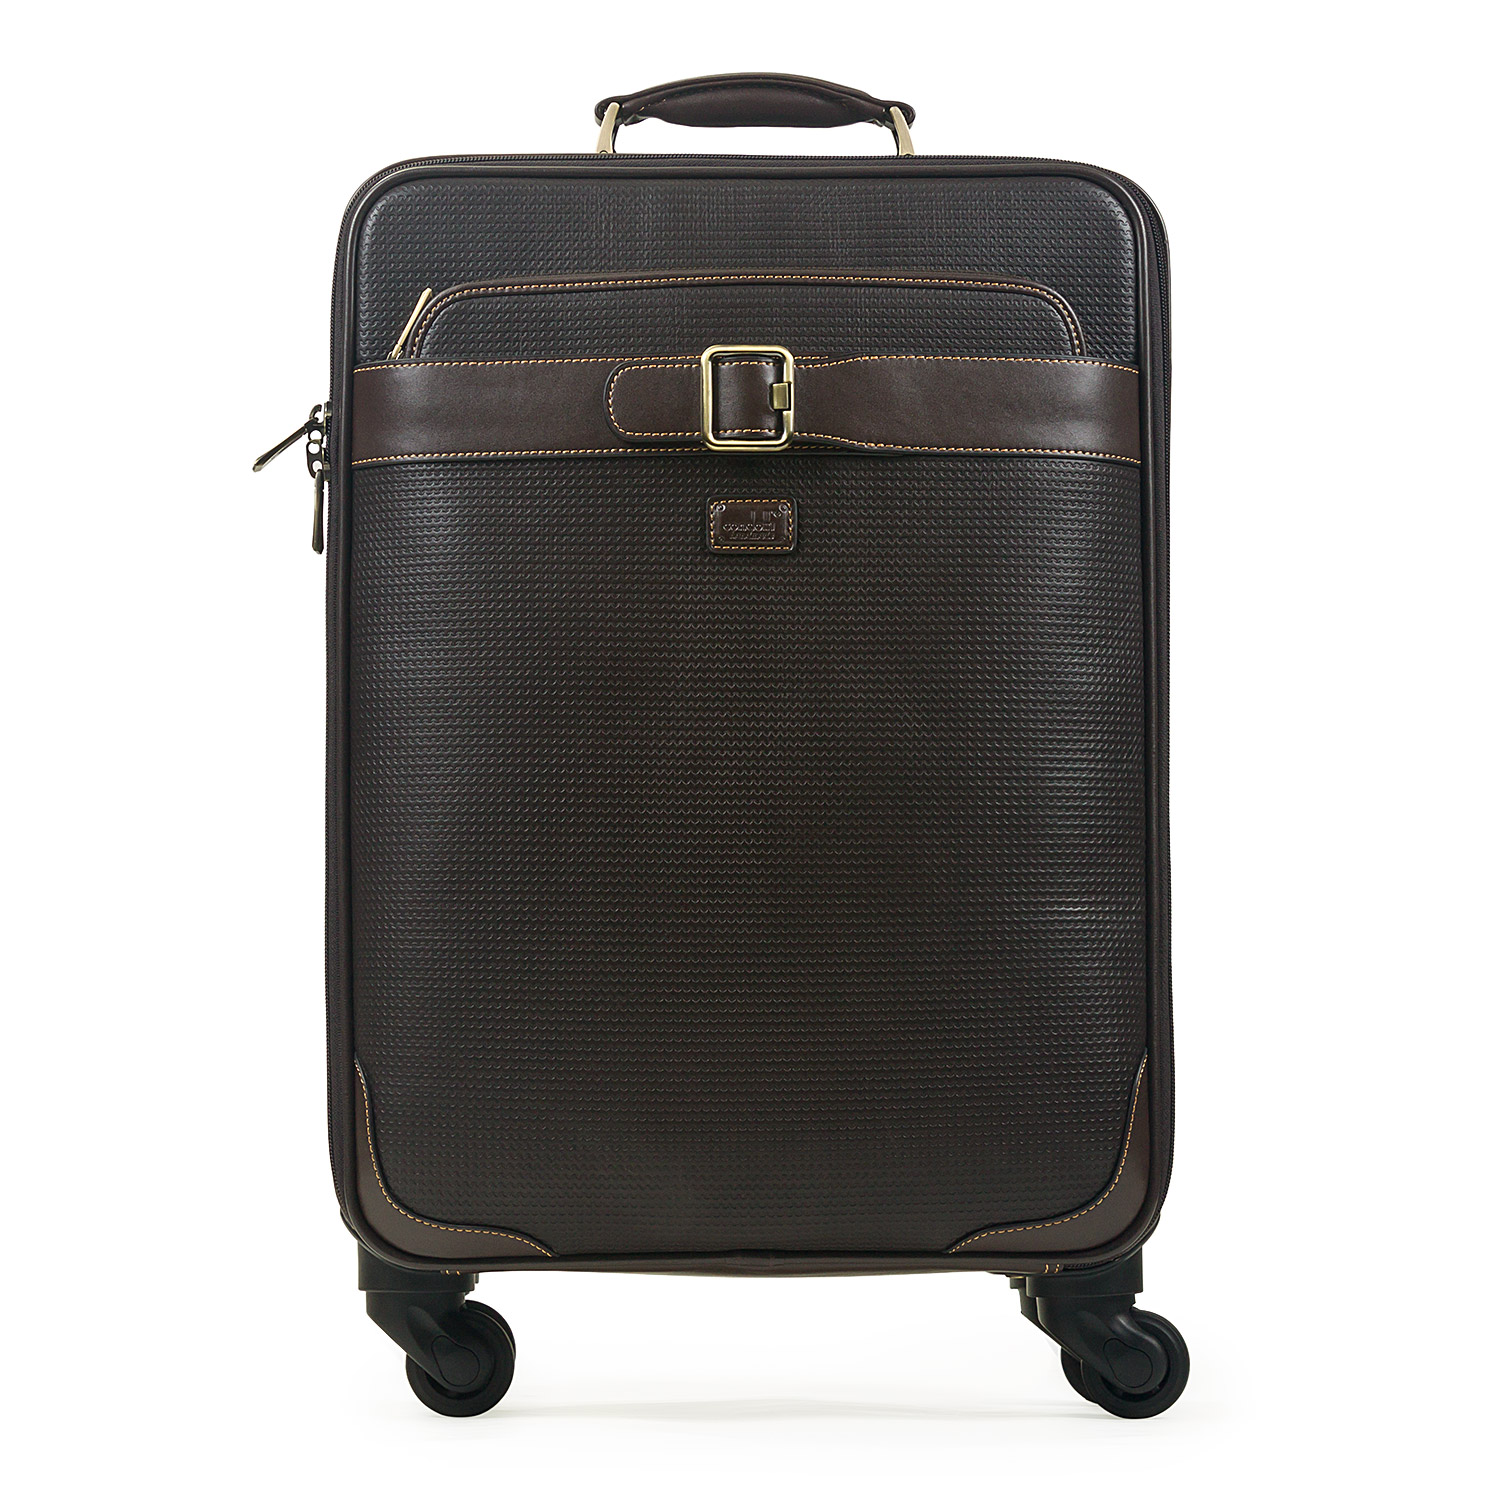 Condotti 4 Wheel Full Grain Leather Onboard Trolley Bag